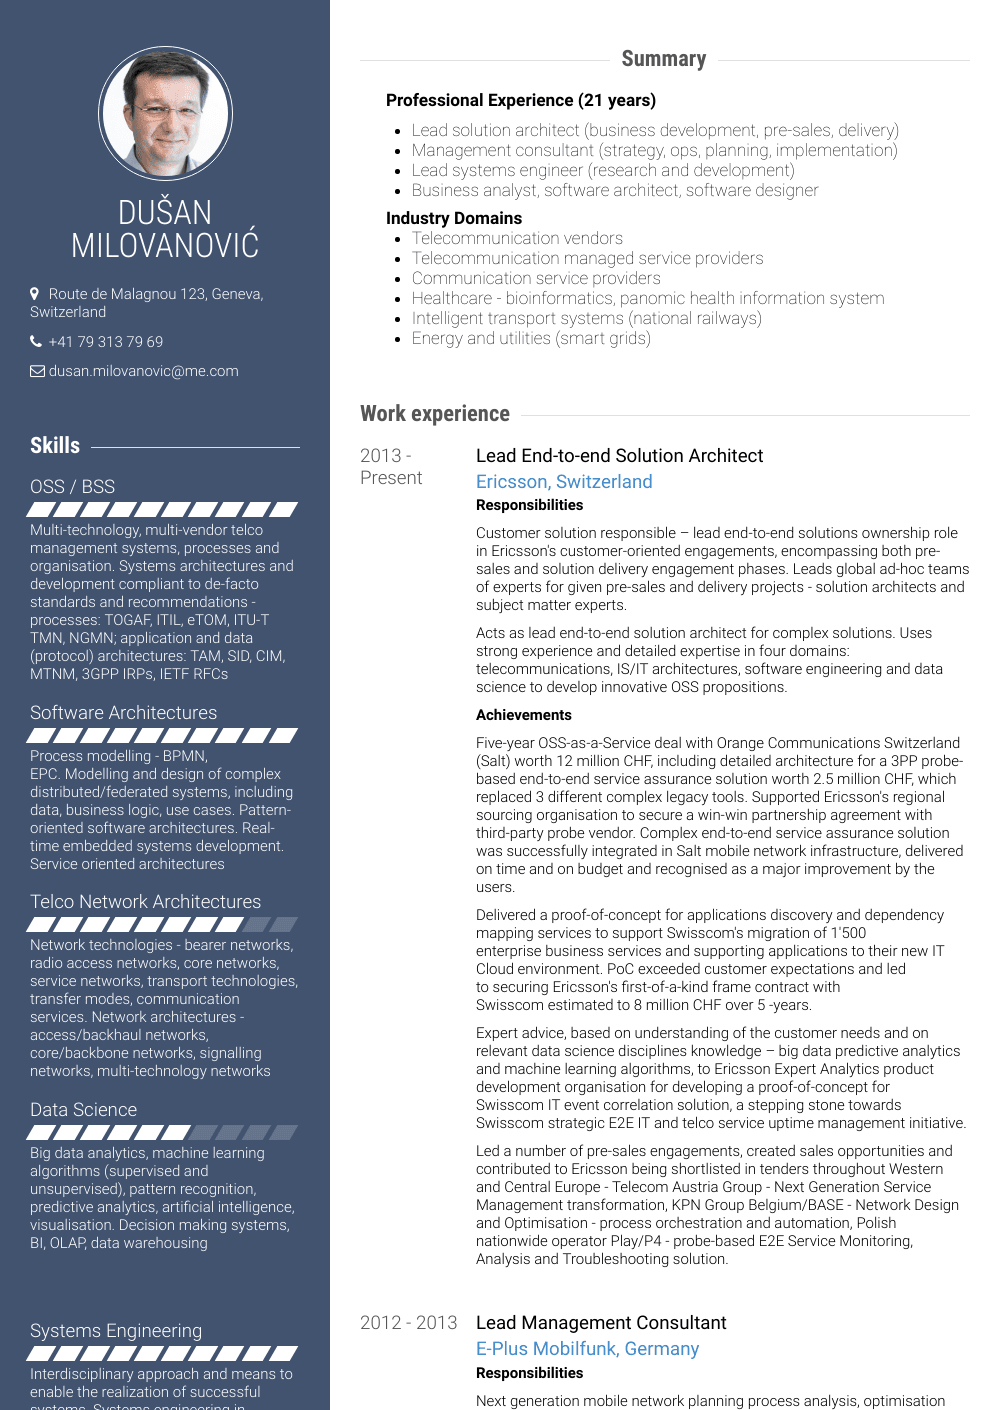 Network Architect Resume Pdf 2019 Network Architect Resume Objective 2020 Network Architect Resume Pdf Network Architect Resume Resume Pdf Best Resume Template